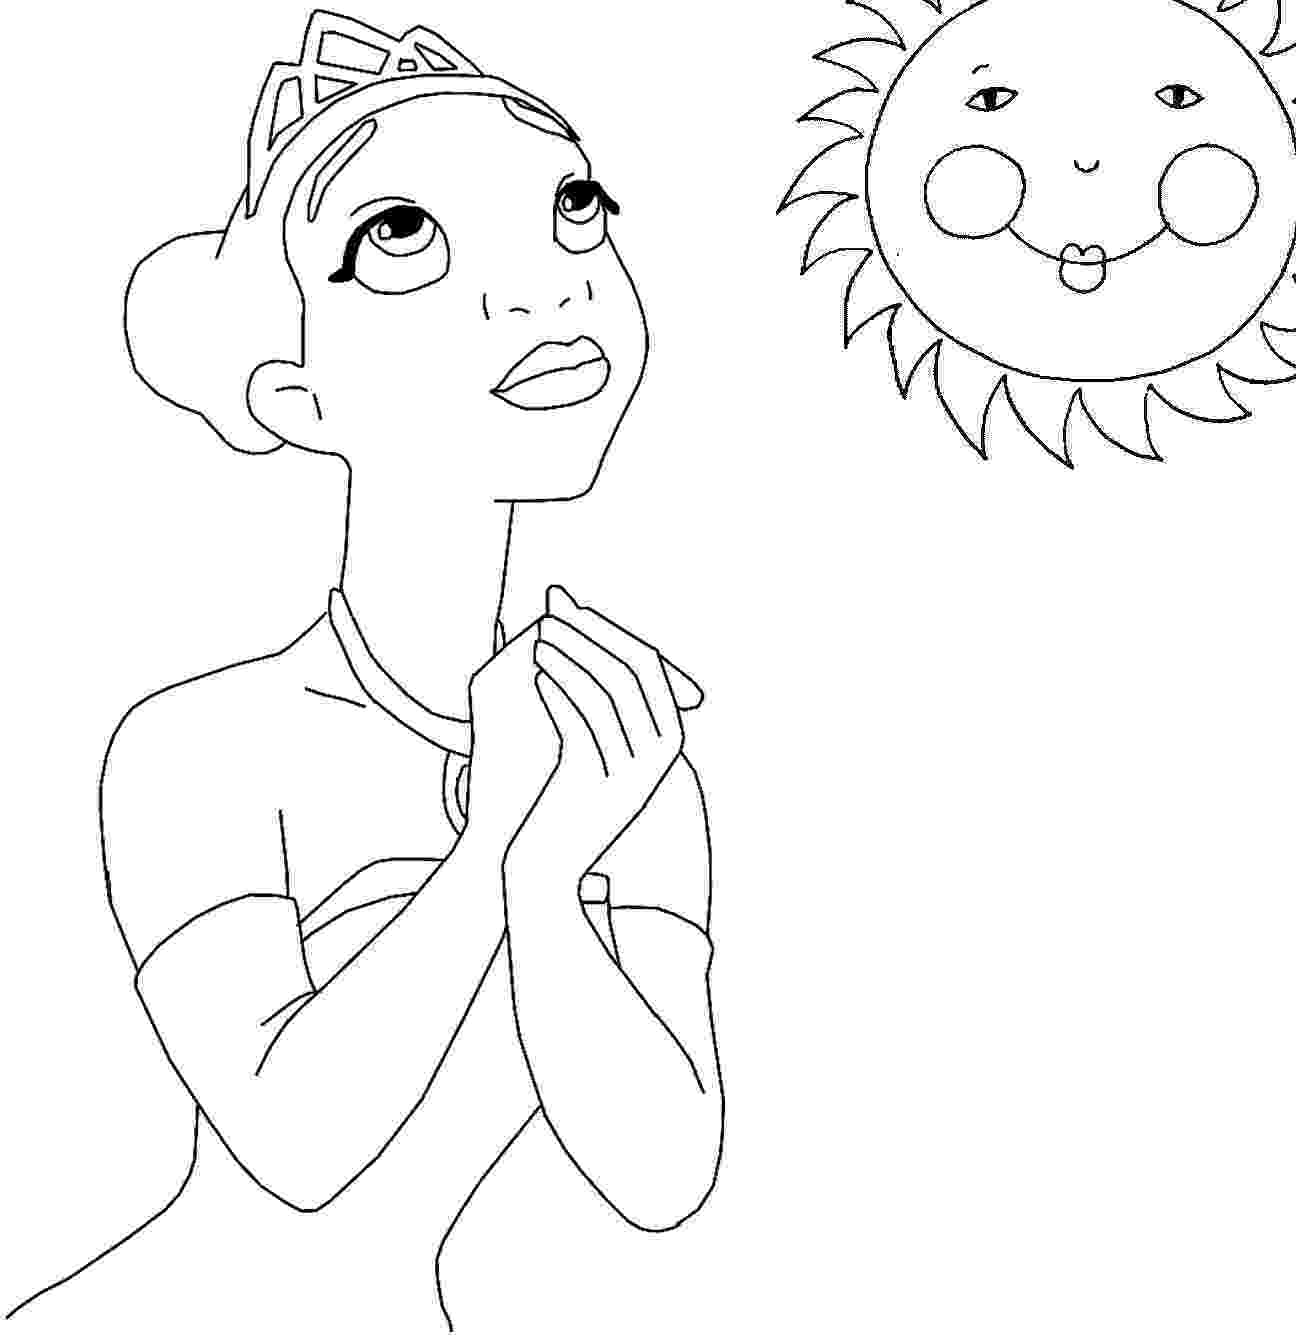 coloring pages for girls princess printable cute princess sofia coloring pages for girls girls princess coloring pages for